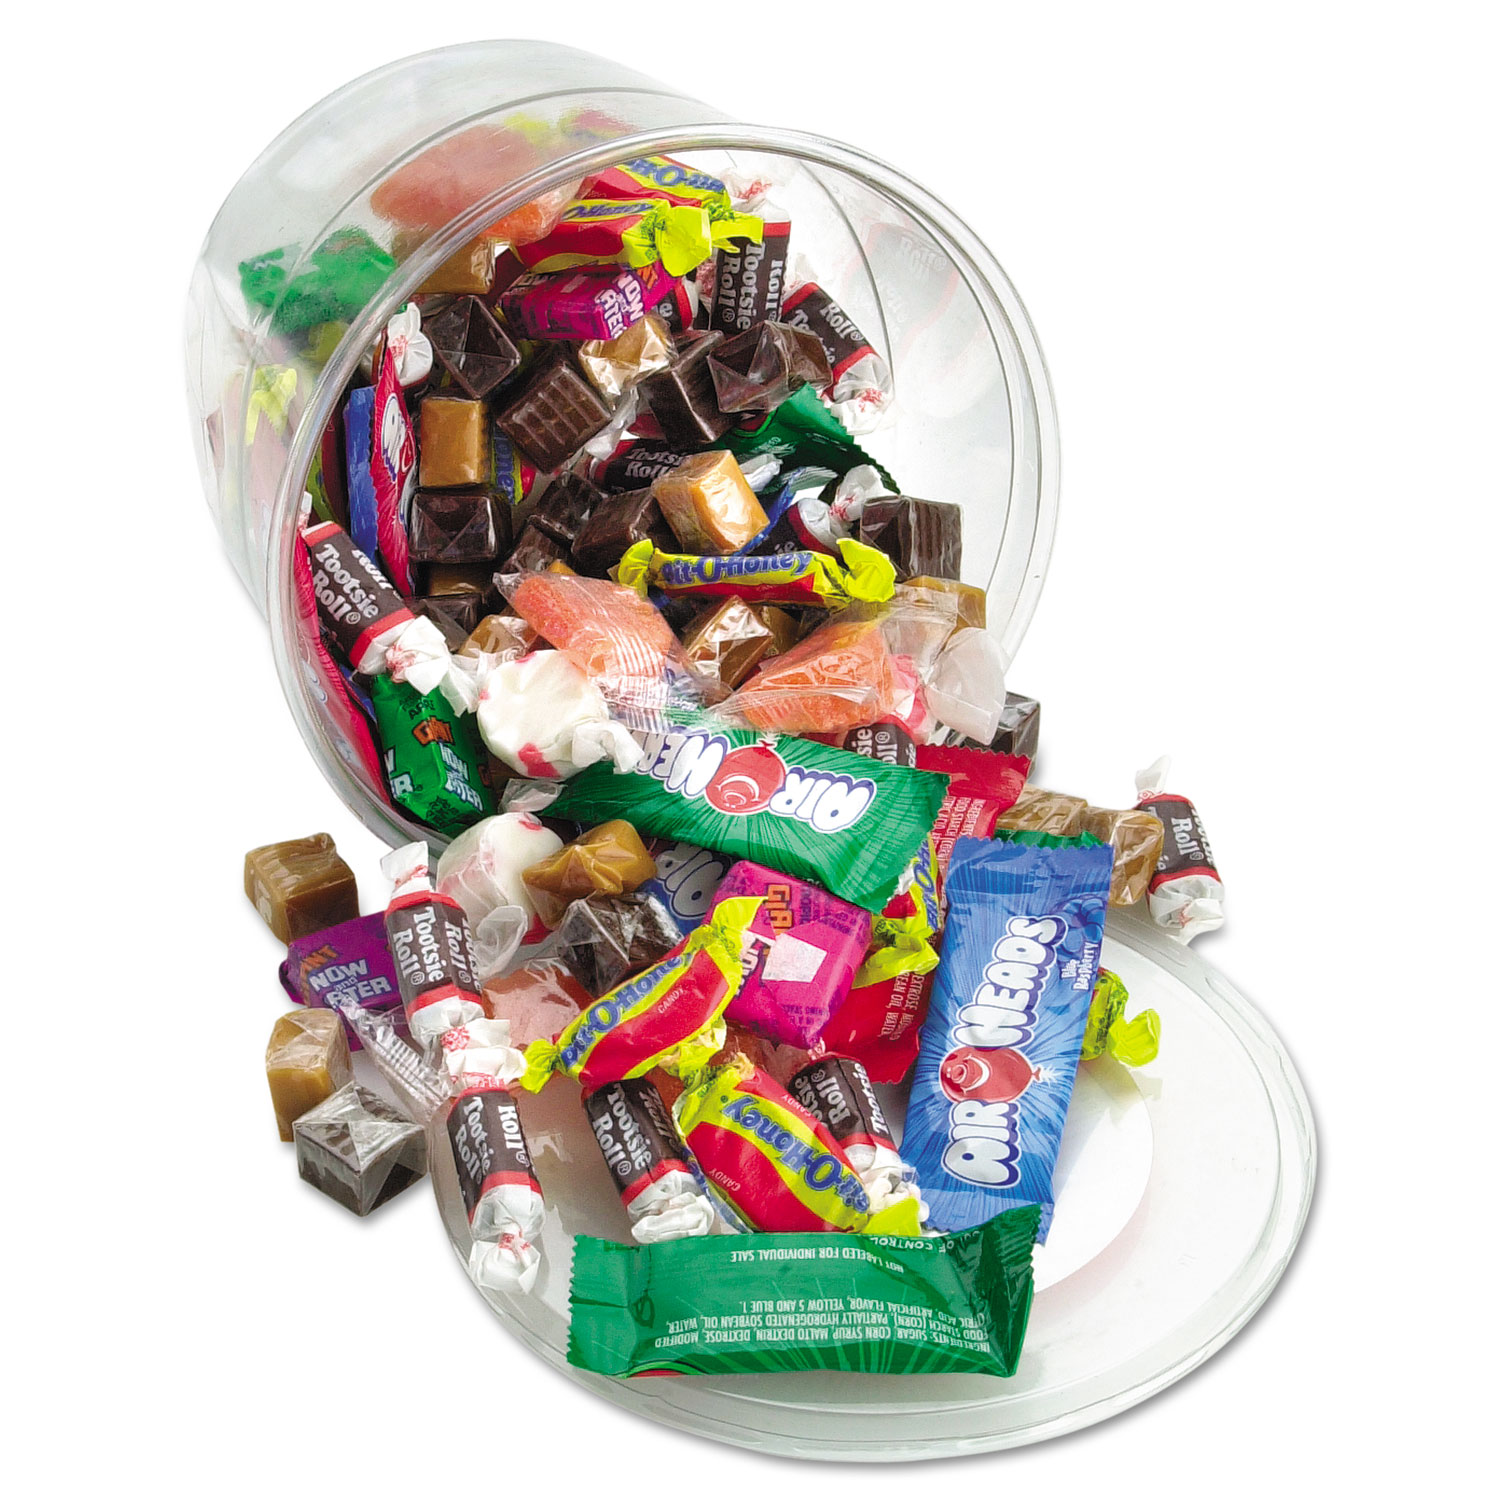 Soft and Chewy Mix, Assorted Soft Candy, 2 lb Resealable Plastic Tub